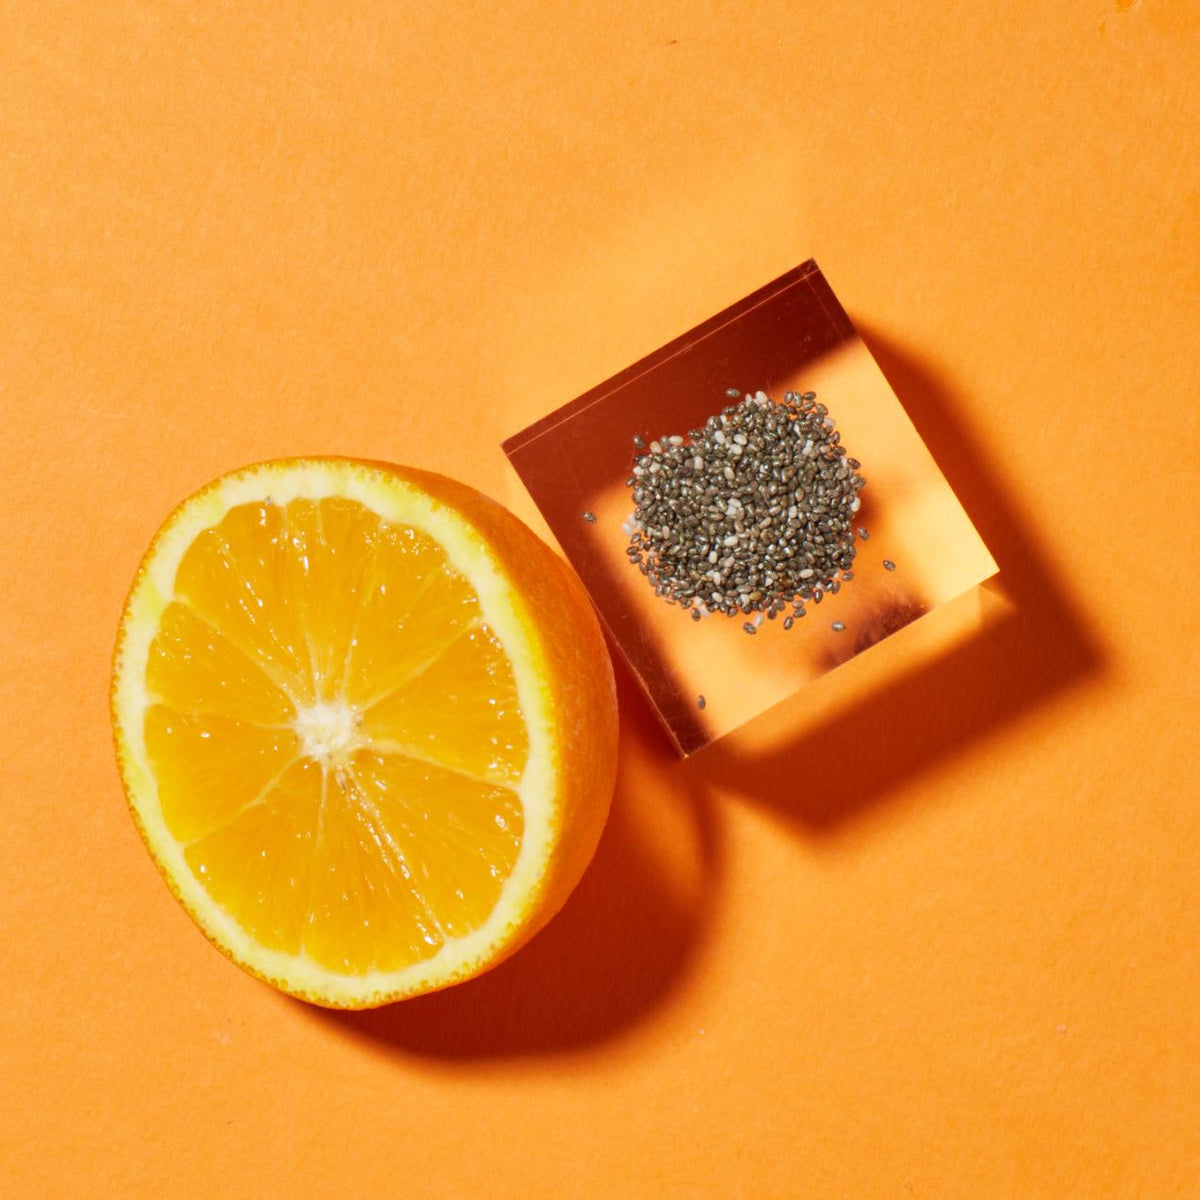 Chia seeds and half of an orange